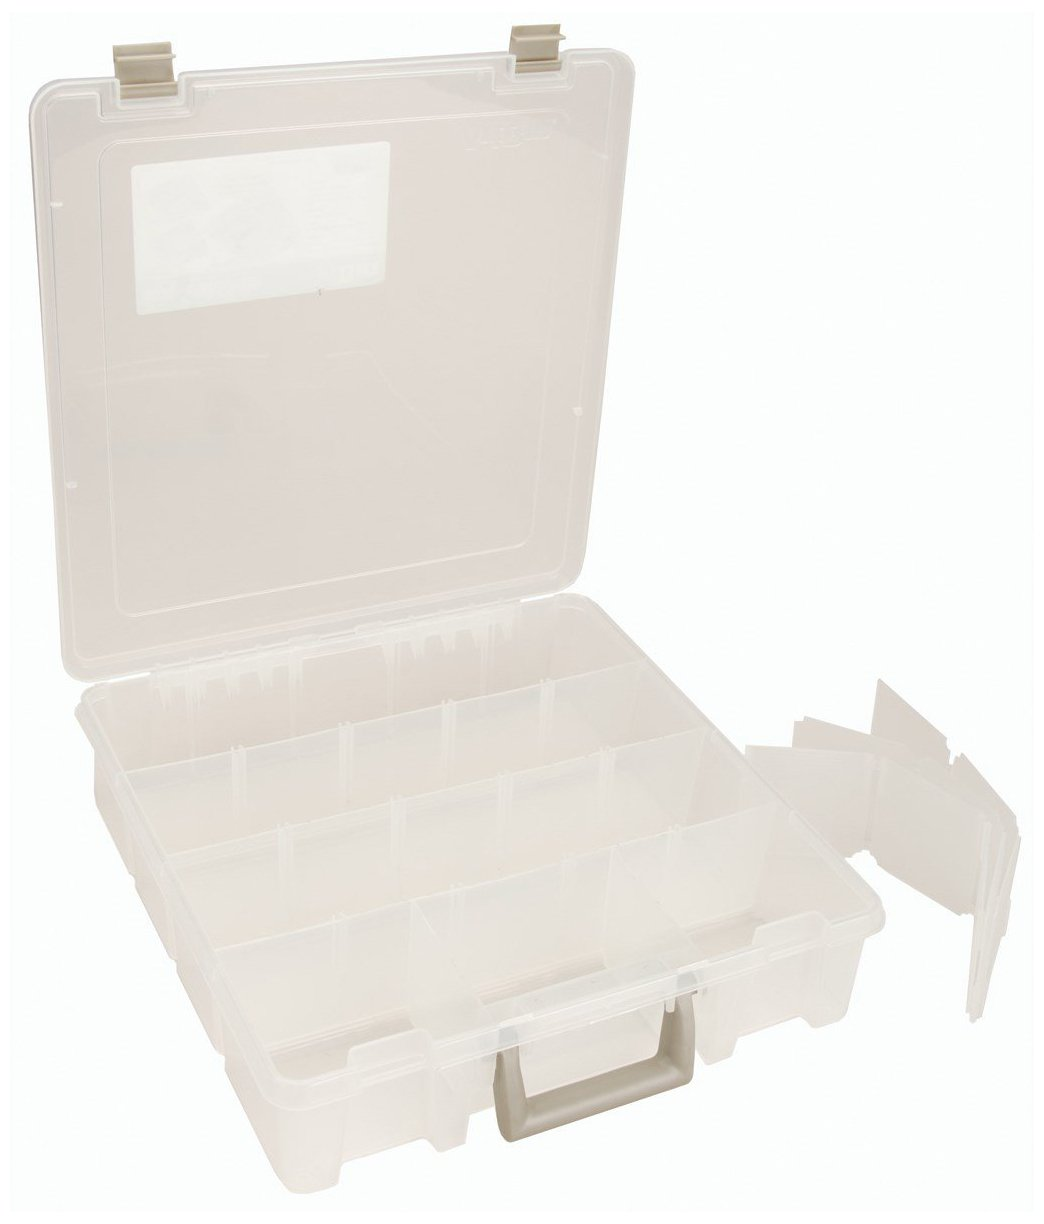 ArtBin Super Satchel Removable Dividers Box - Art Craft Storage Container, 9007AB